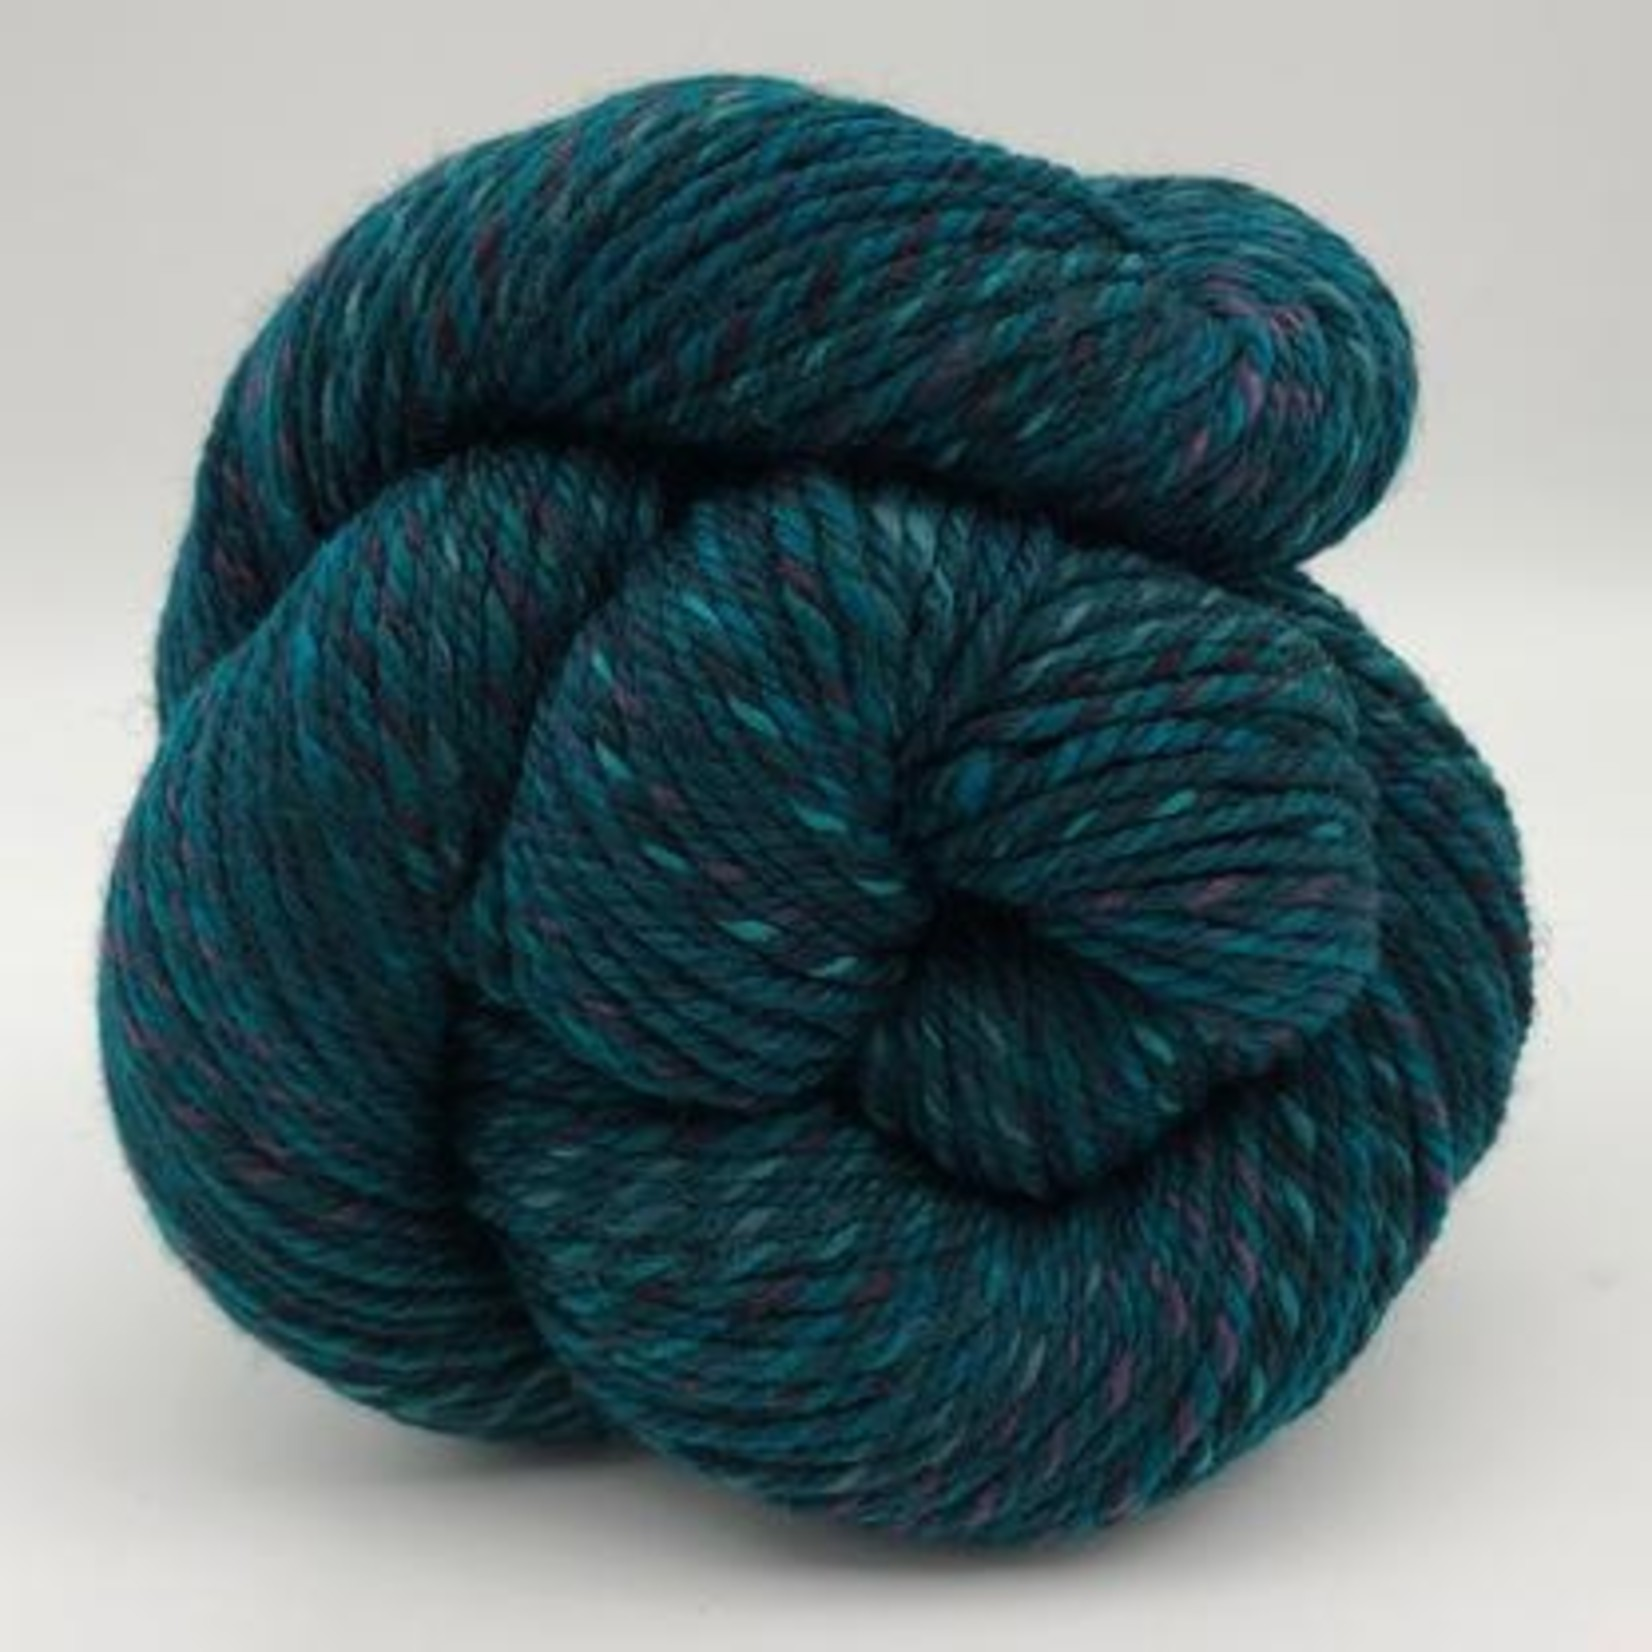 Spincycle Yarn Dyed in the Wool, Melancholia